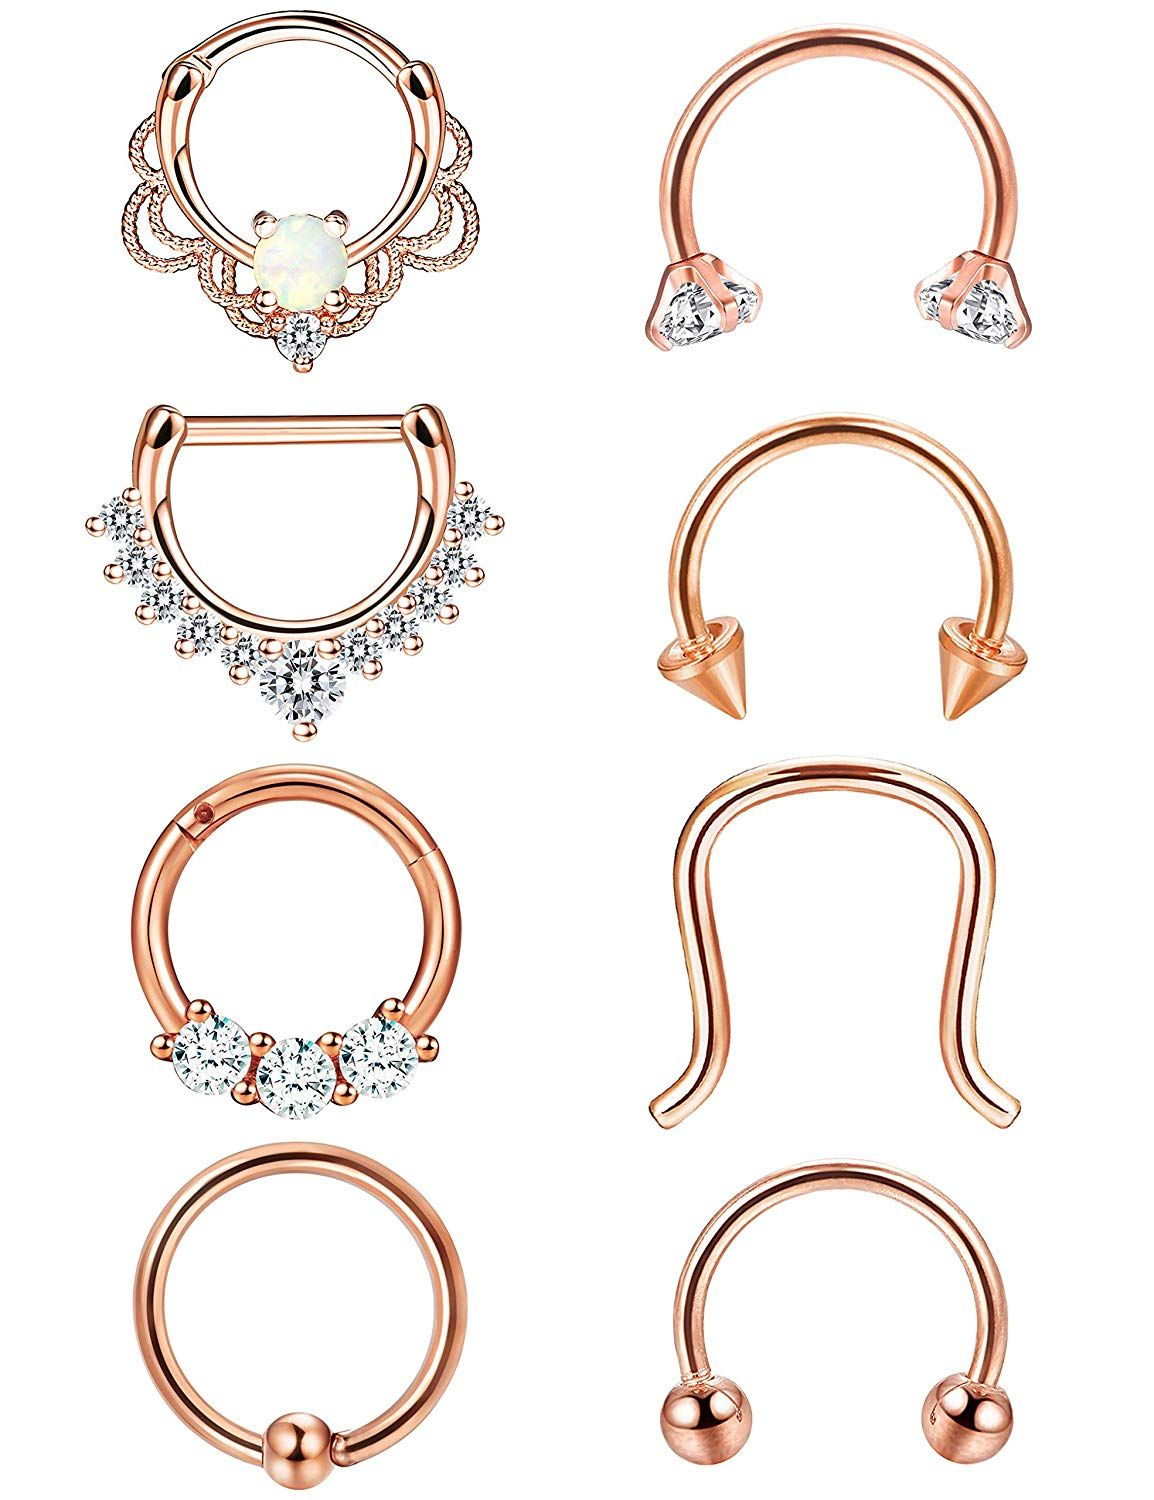 Orazio 8pcs 16g 316l Stainless Steel Septum Hoop Nose Ring Horseshoe Rings Daith Toe Rings Body Chains An Nose Rings Hoop Daith Piercing Jewelry Tragus Jewelry